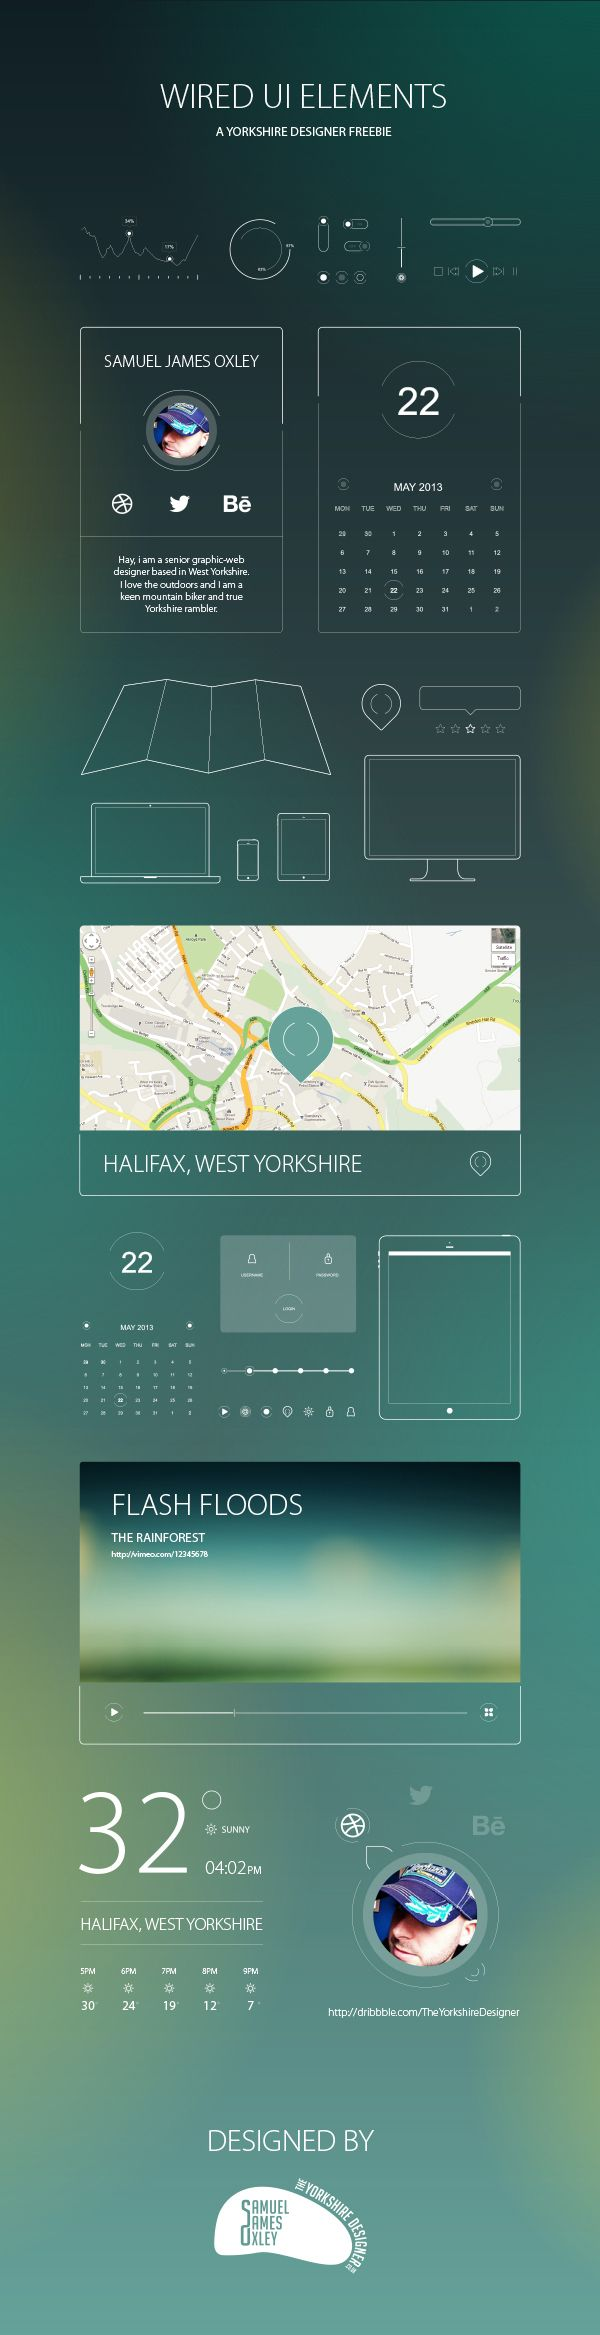 Wired UI Elements by Samuel James Oxley, via Behance